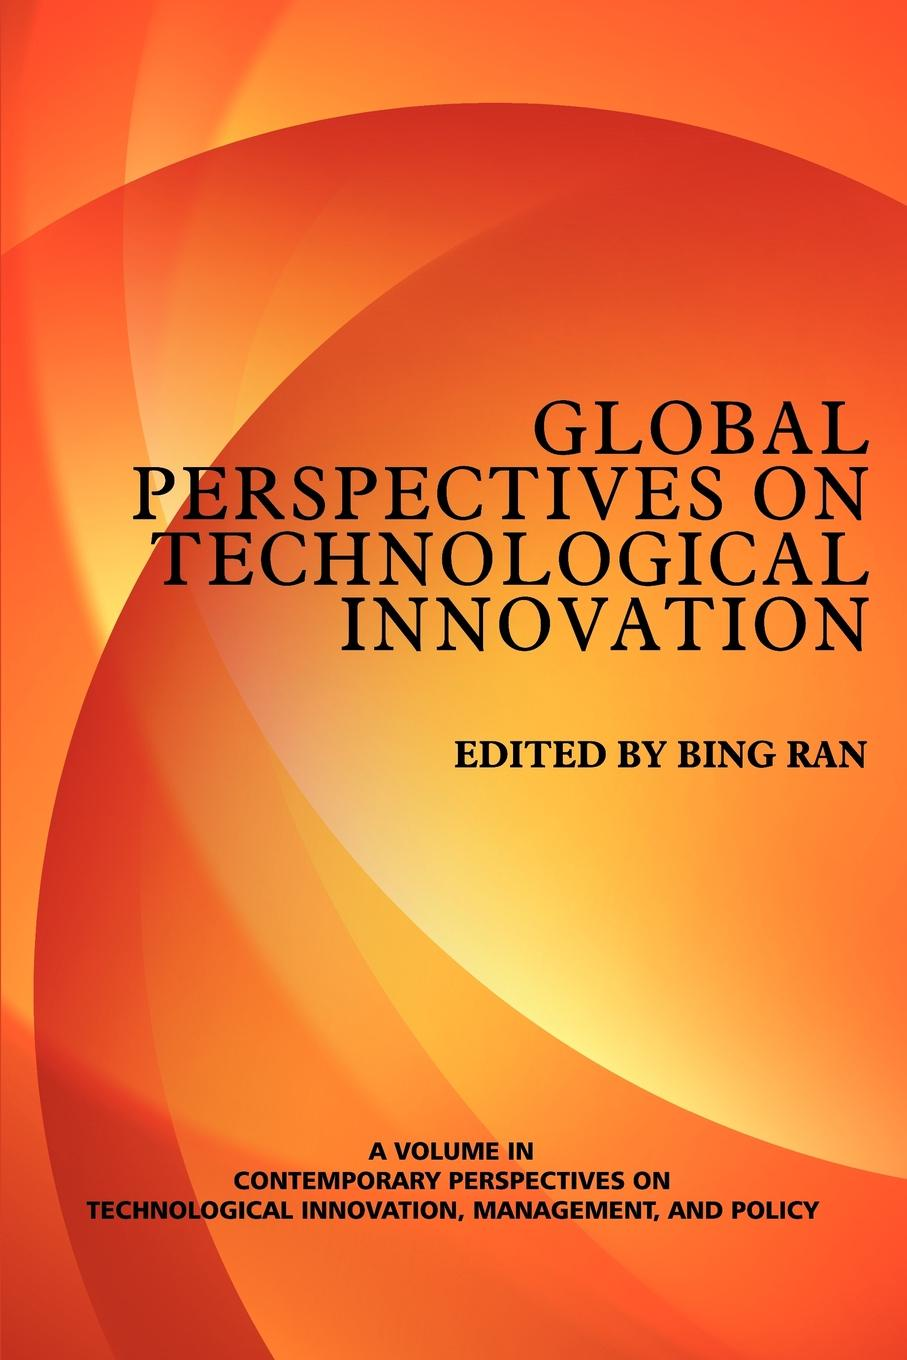 Global Perspectives on Technological Innovation Managing technological innovations and related policy and strategy...